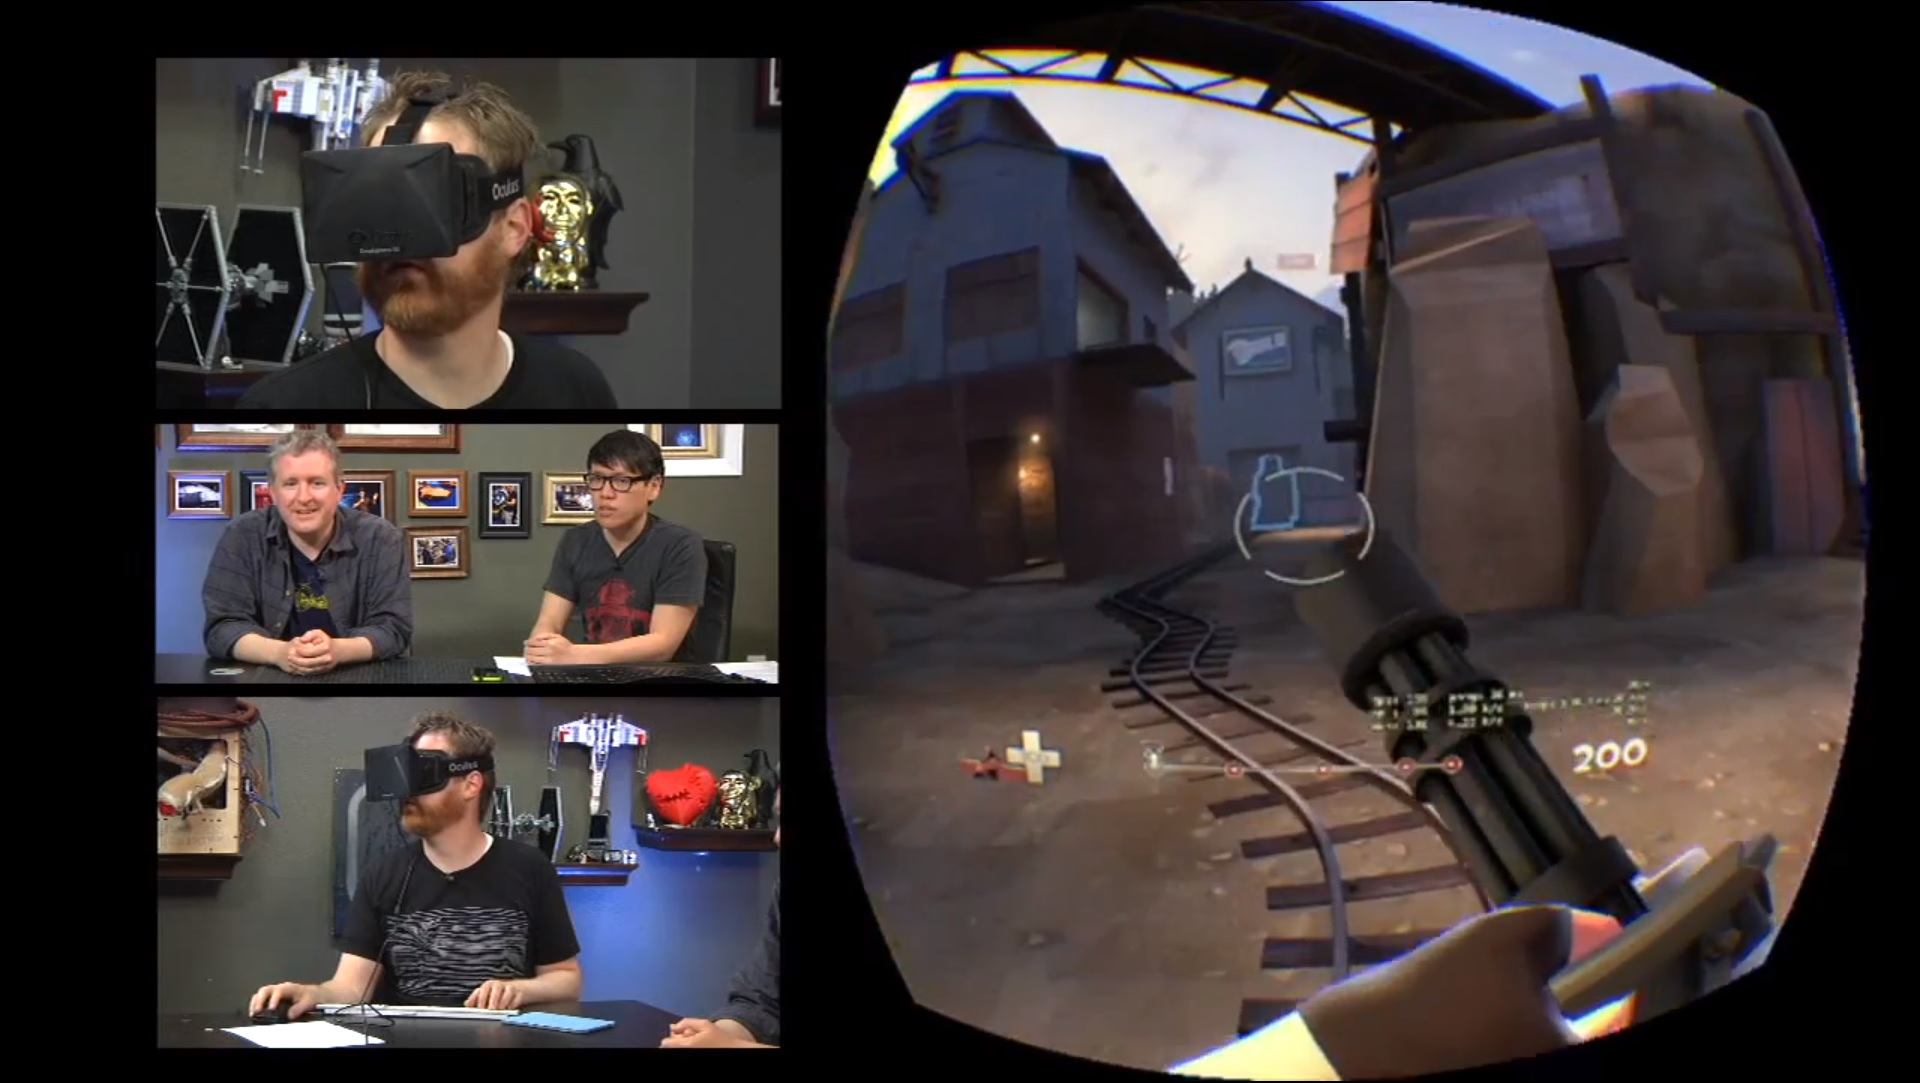 See what Team Fortress 2 looks like using the Oculus Rift